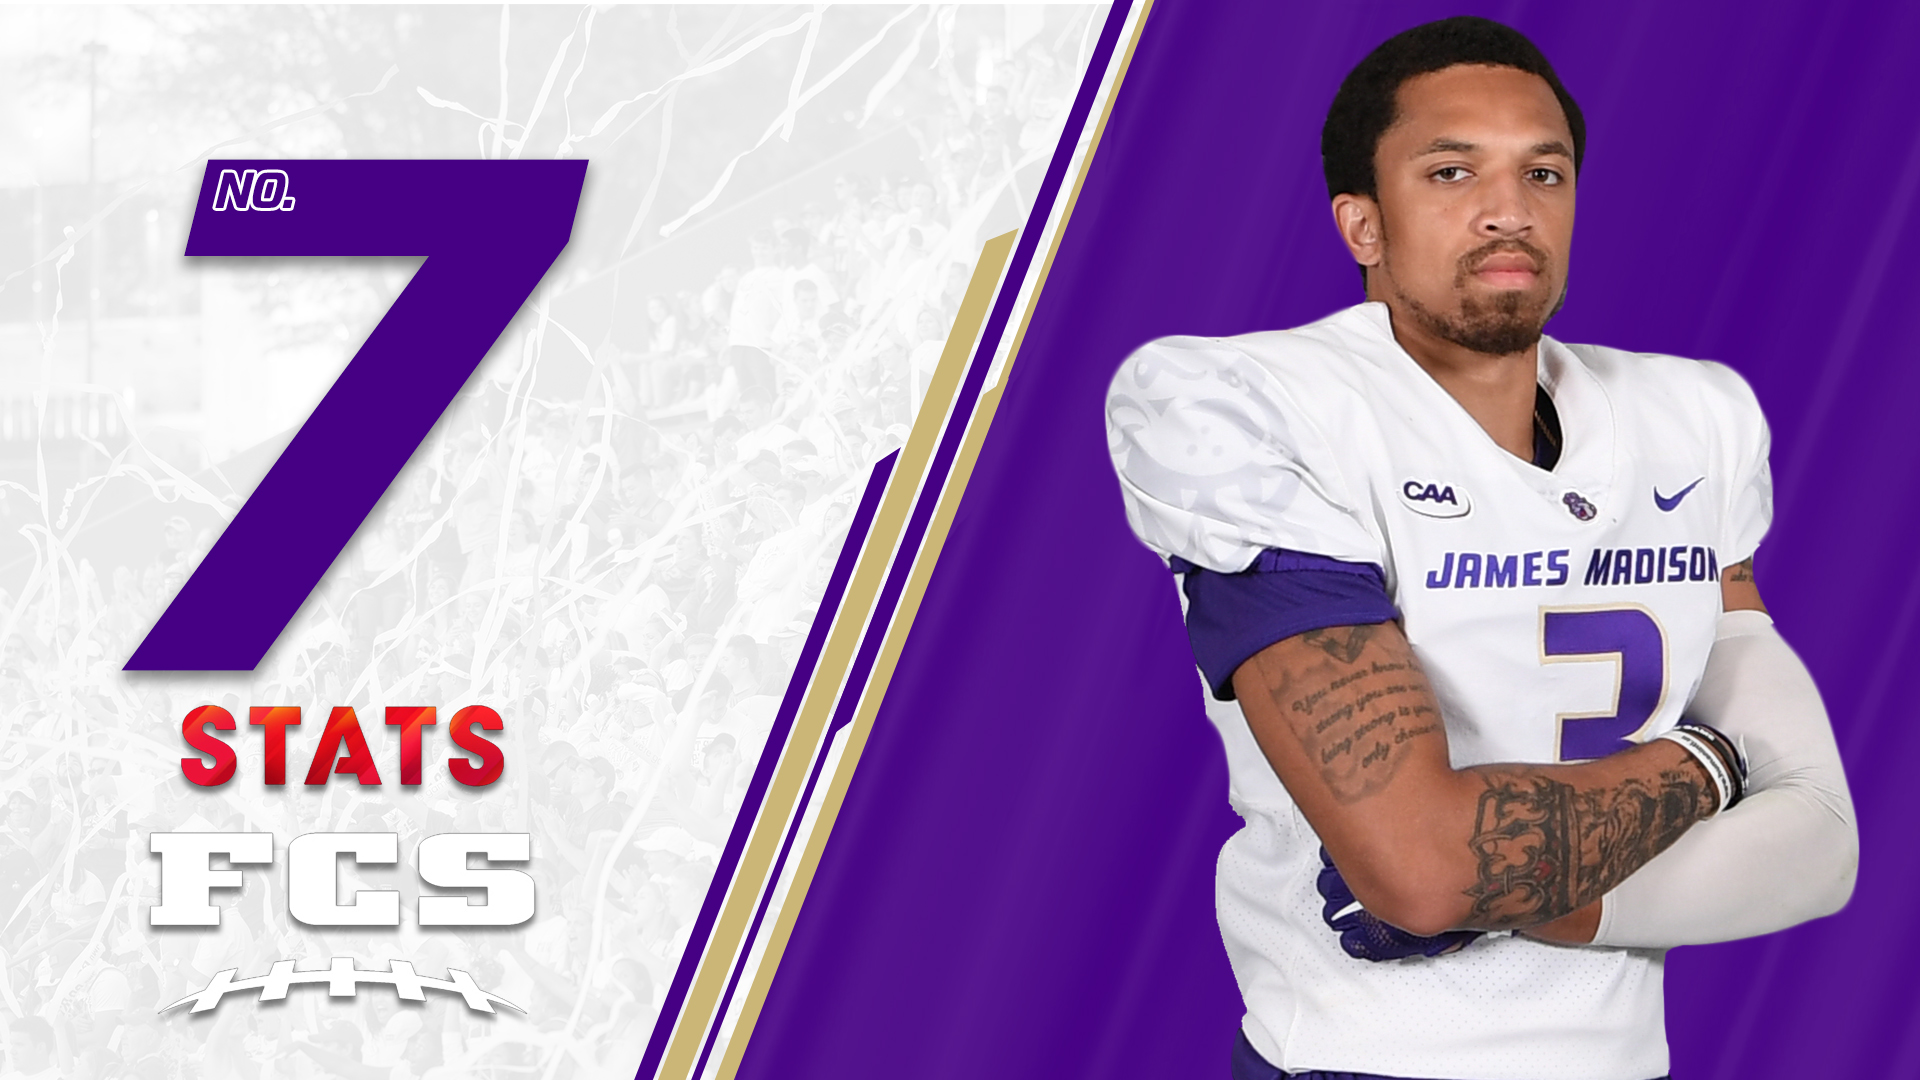 Football: Dukes Rise to Seventh in STATS FCS Top 25